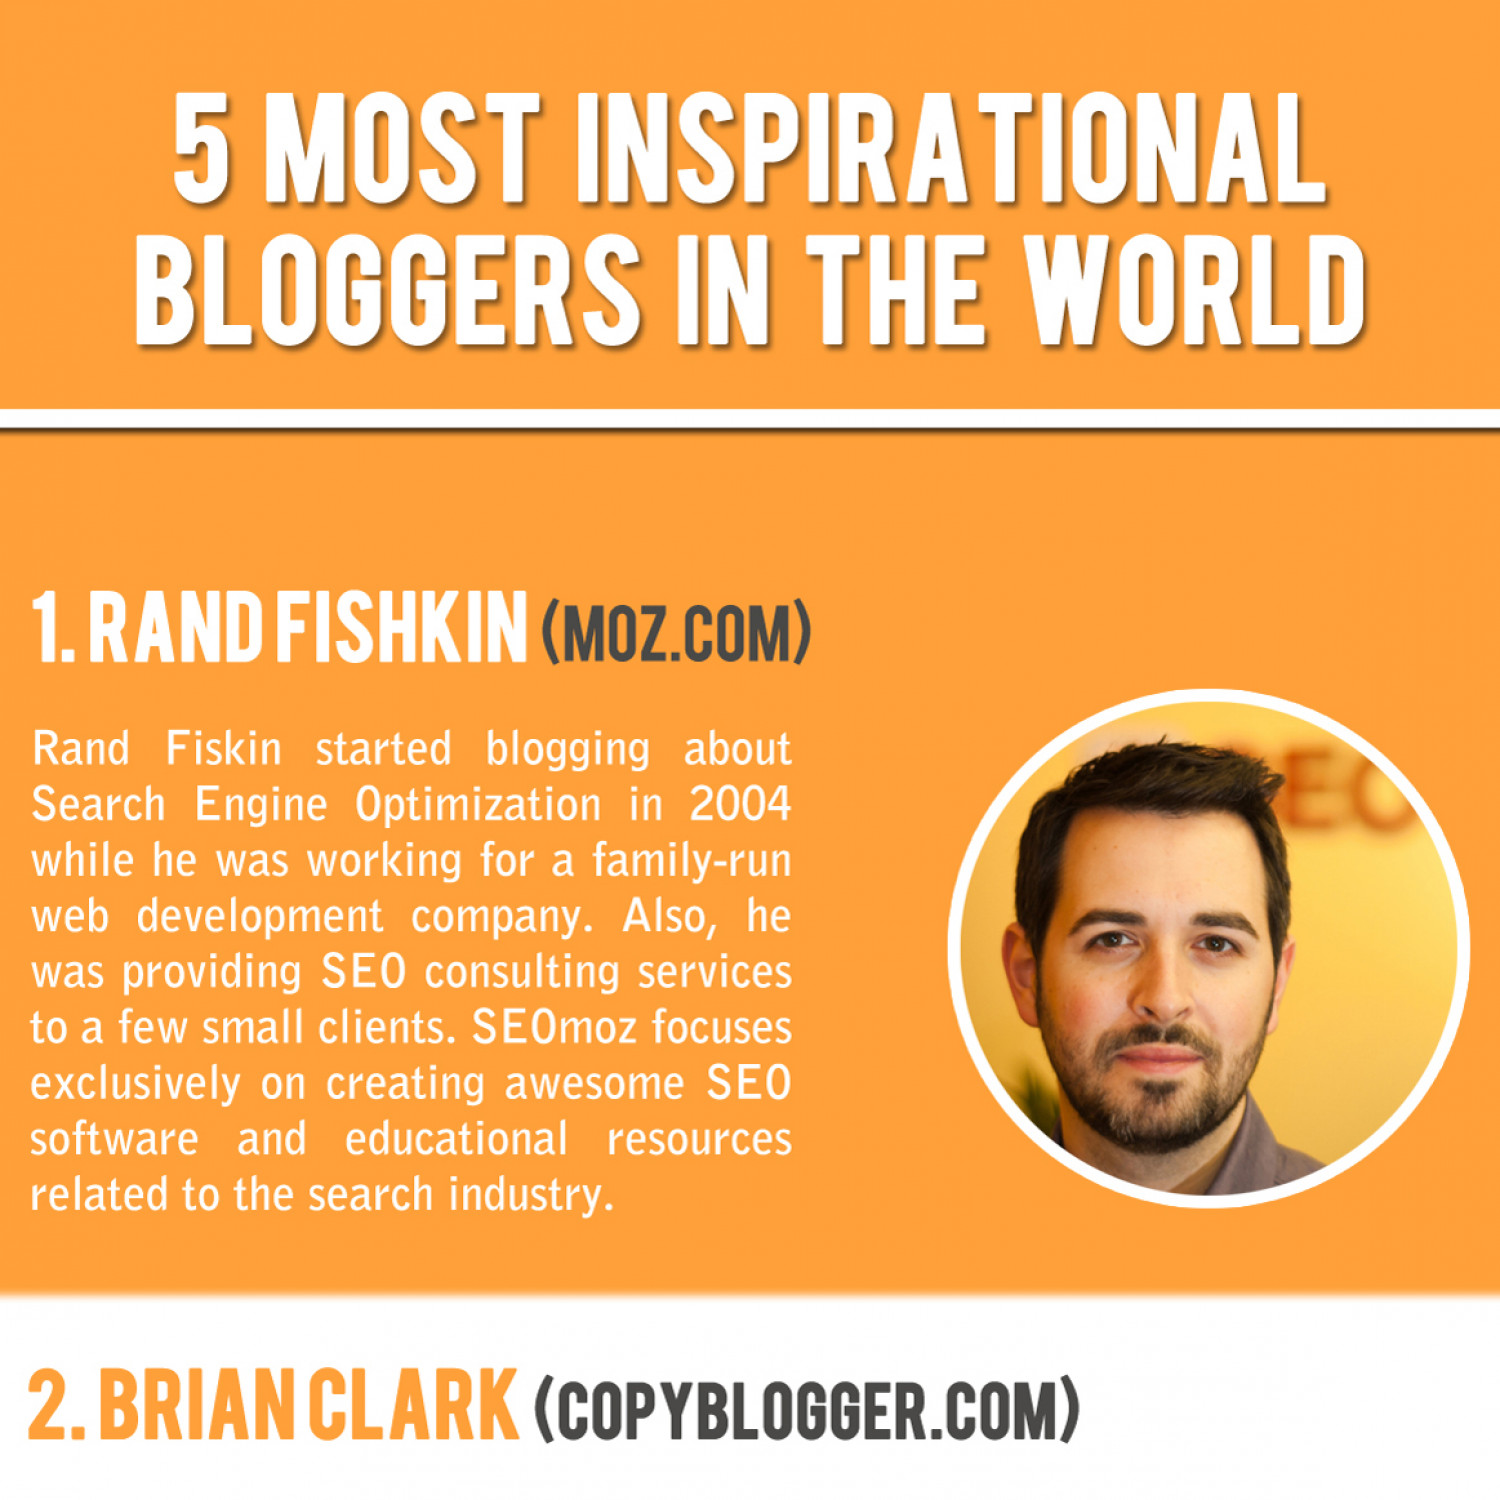 5 Most Inspirational Bloggers In The World  Infographic